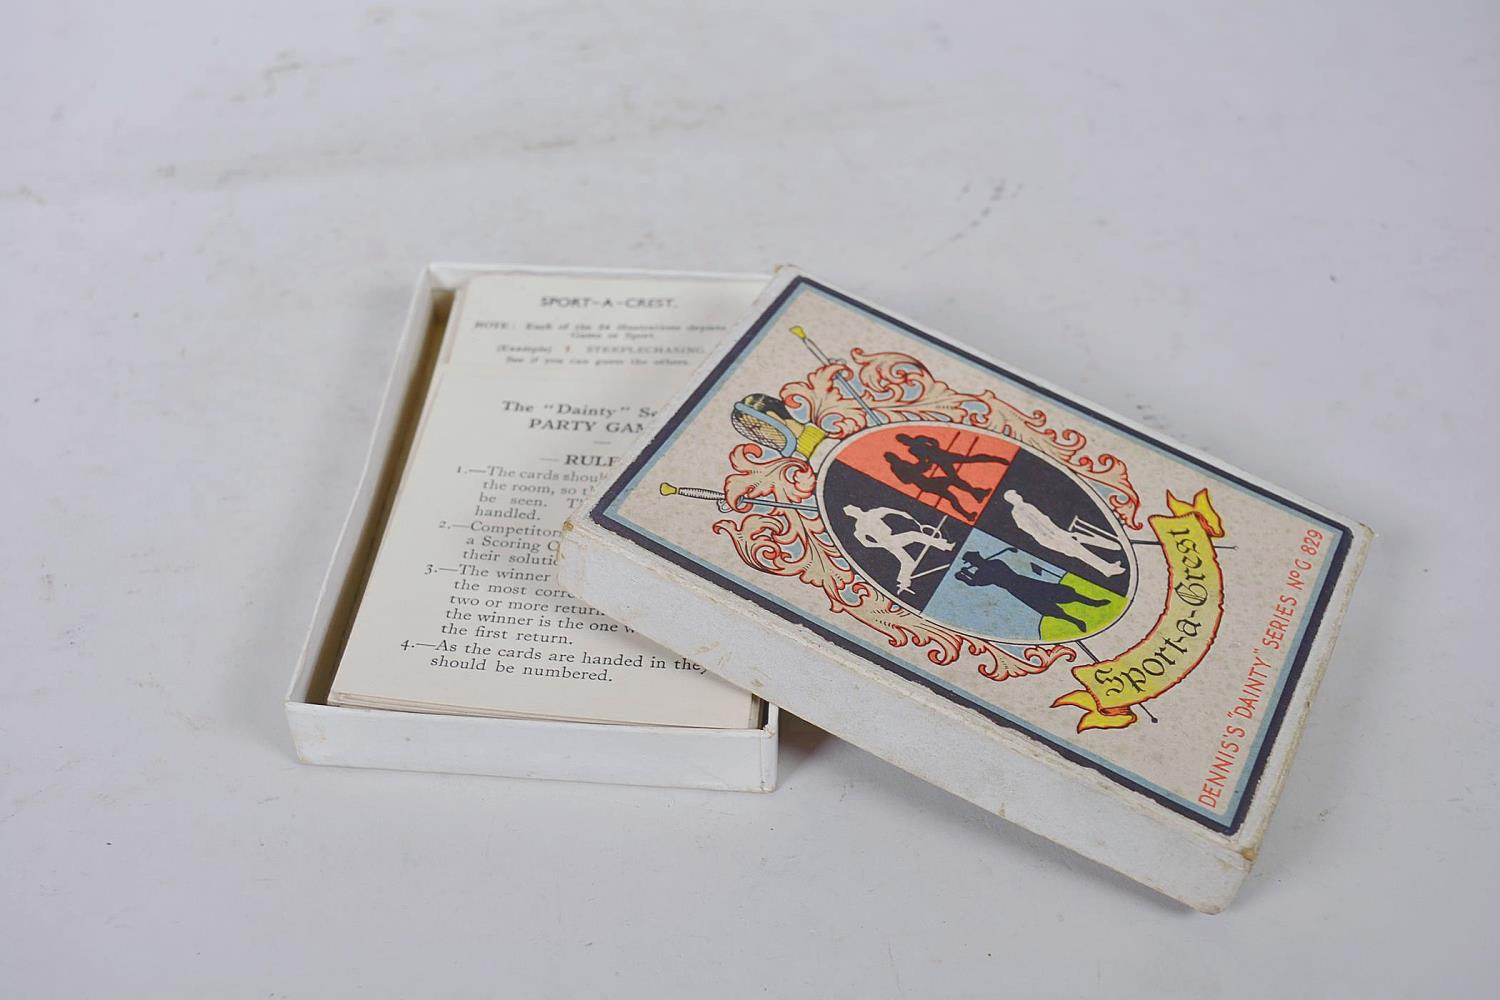 Lot 4 - A small collection of vintage games and playing cards including Beetle Game, Sport a Crest,